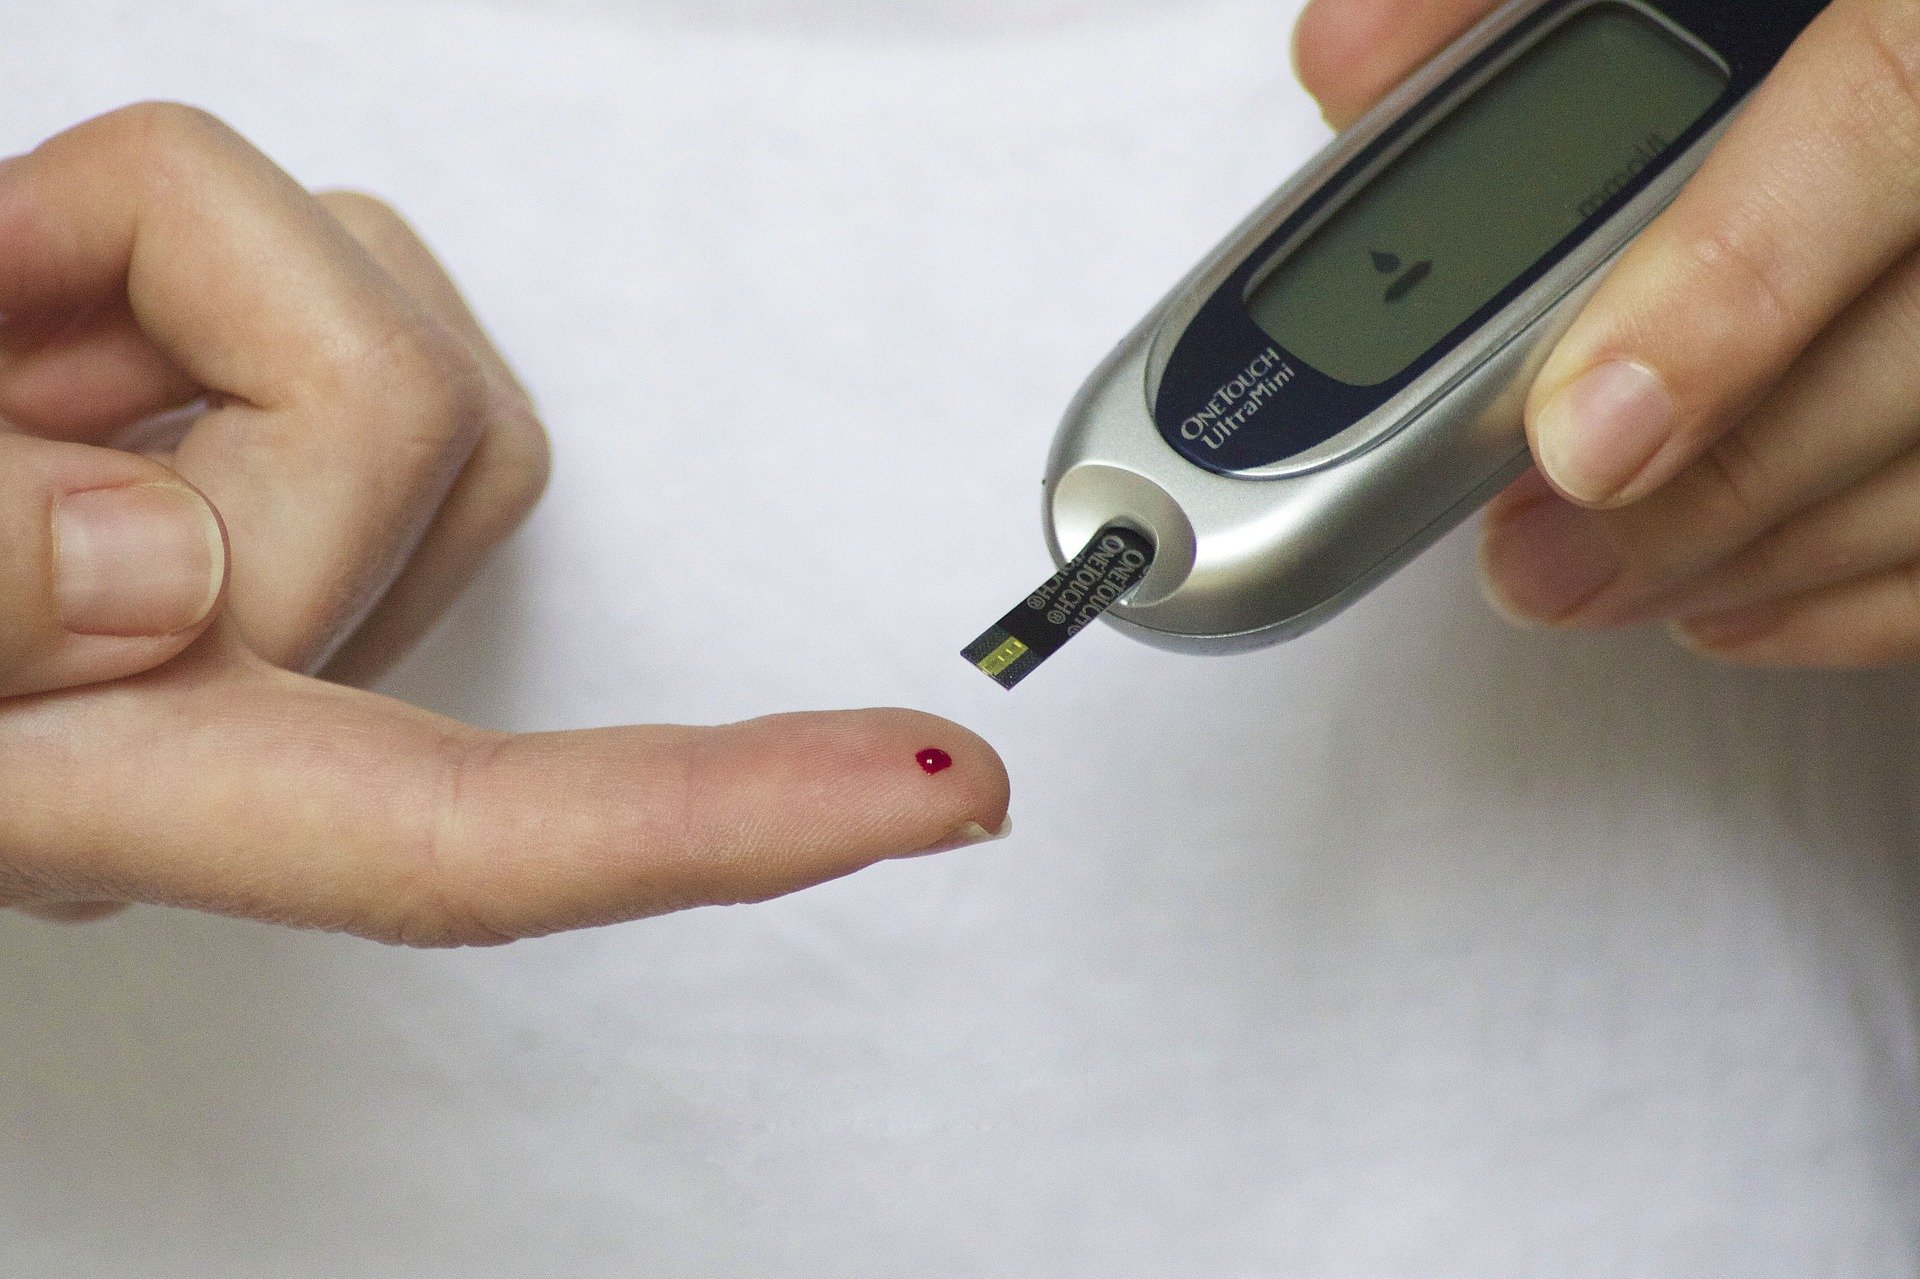 Take A Test and Keep Your Diabetes in Check